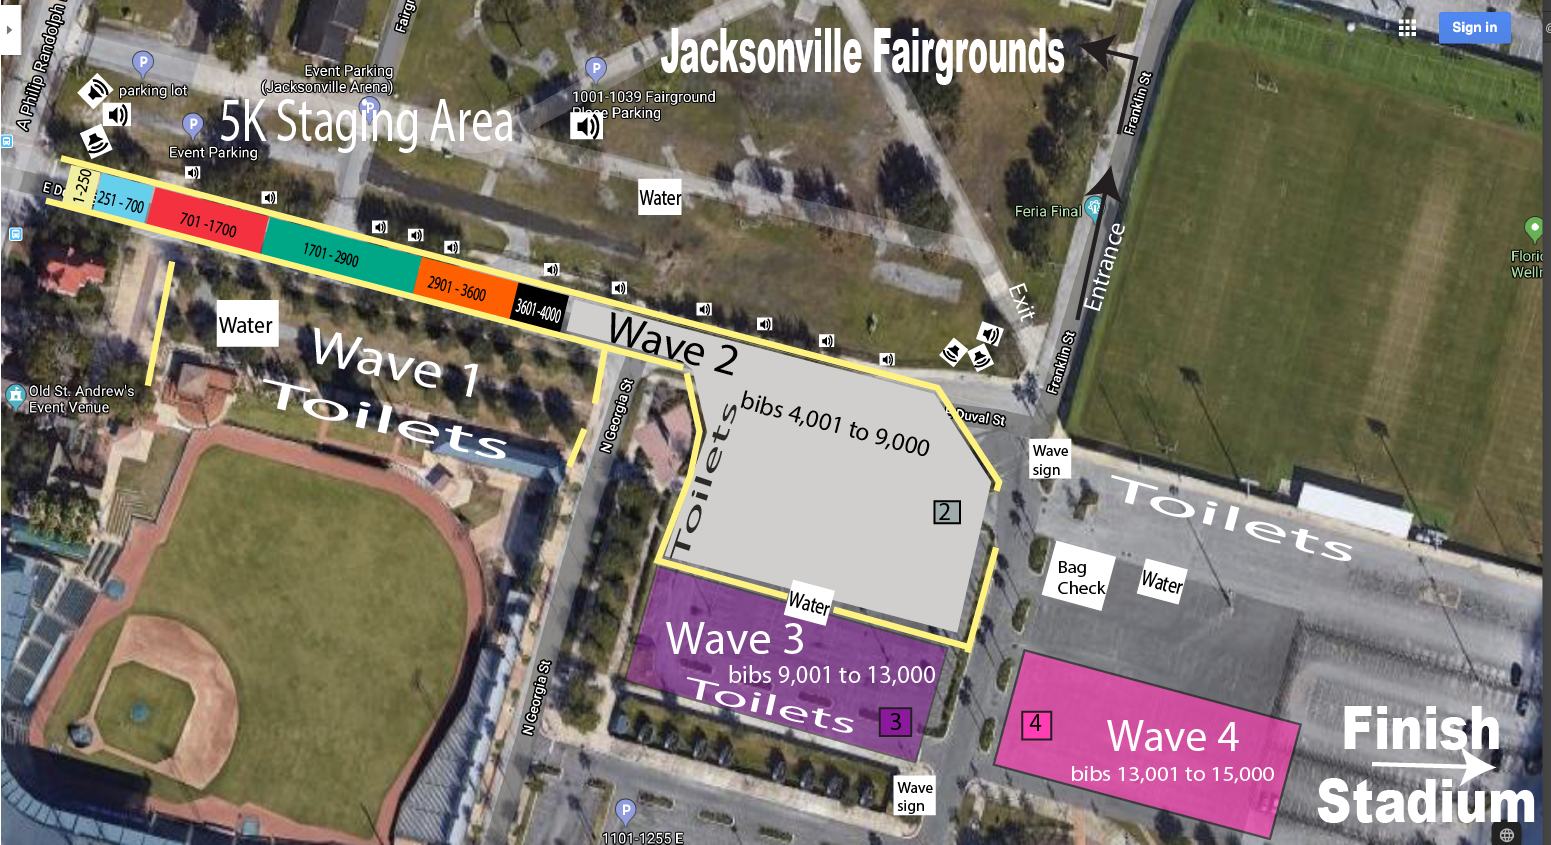 wave layout 2022